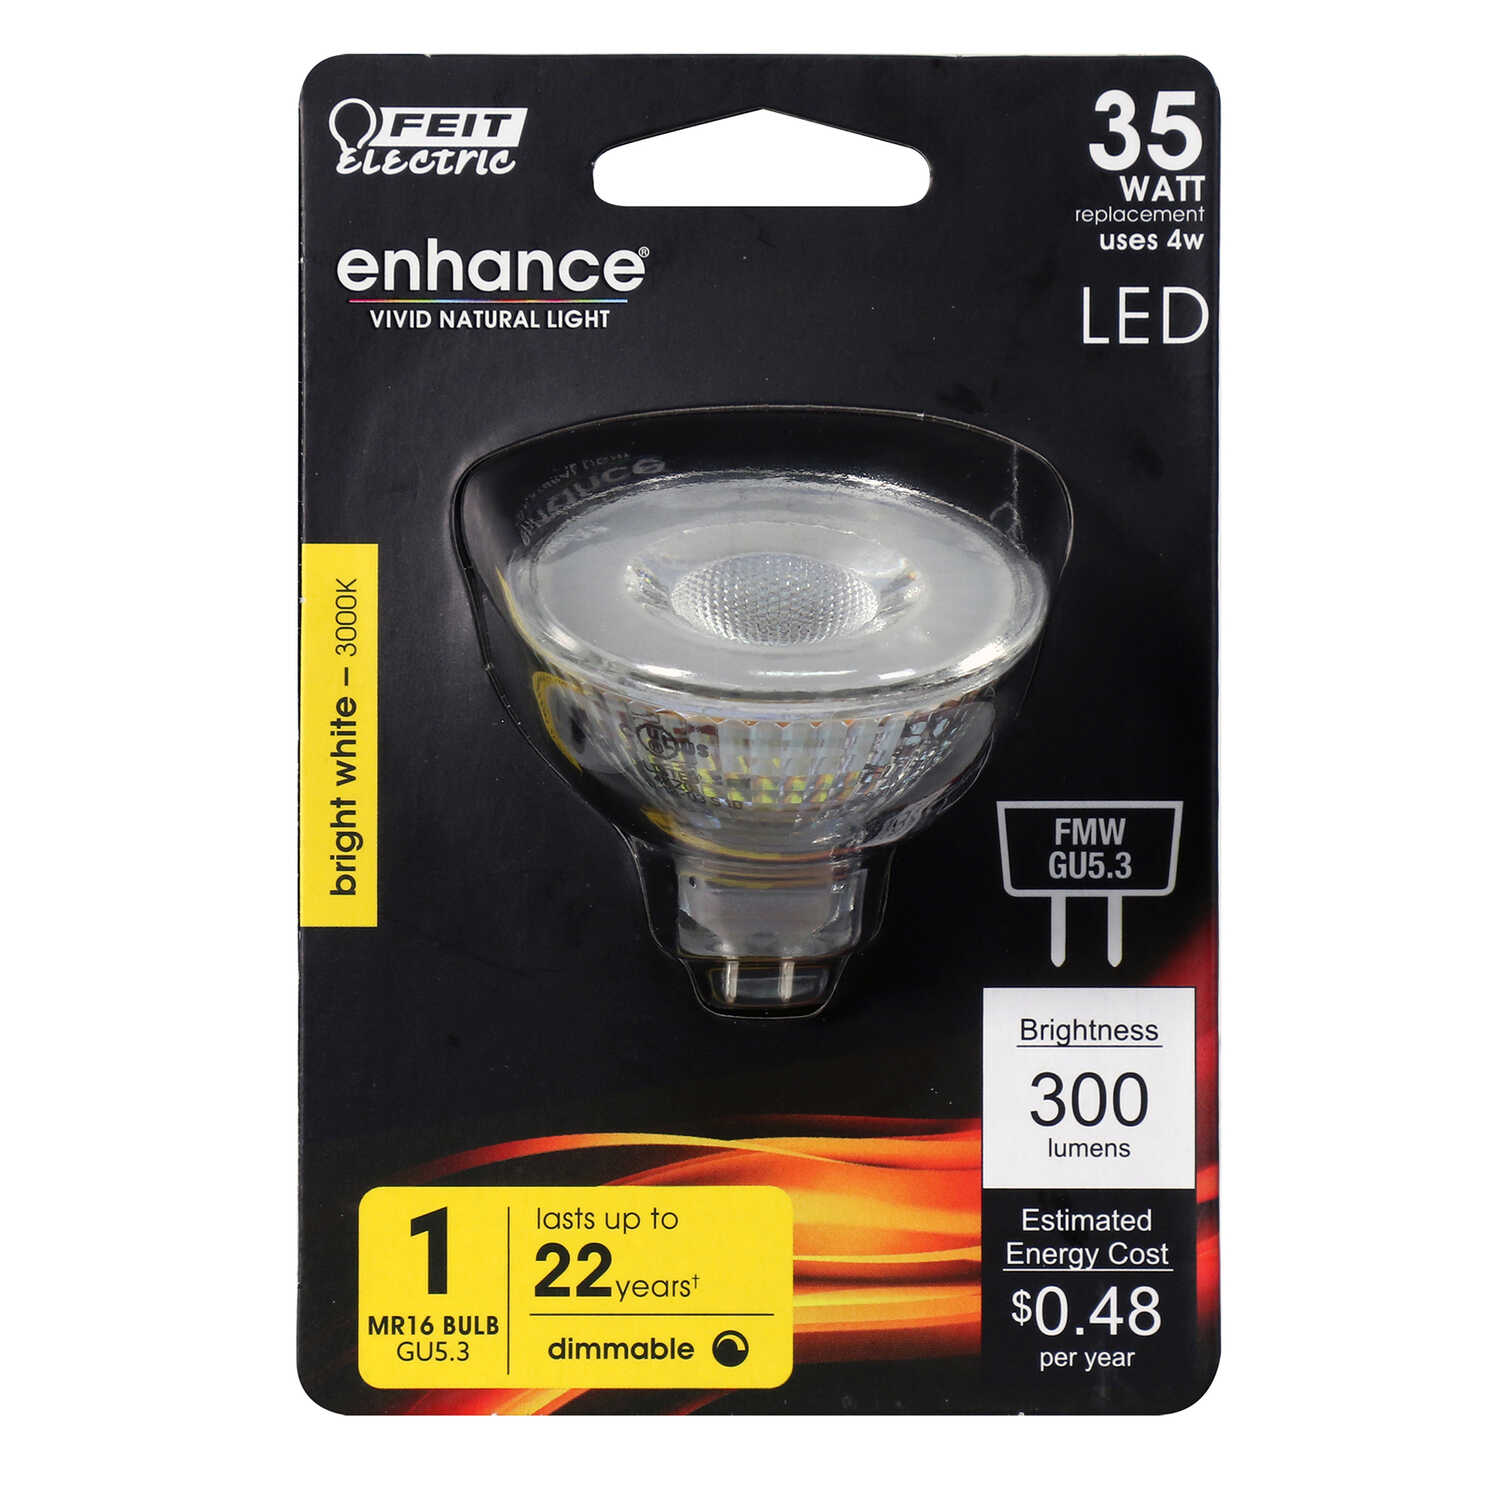 FEIT Electric  Enhance  4 watts MR16  LED Bulb  300 lumens Bright White  Floodlight  35 Watt Equival